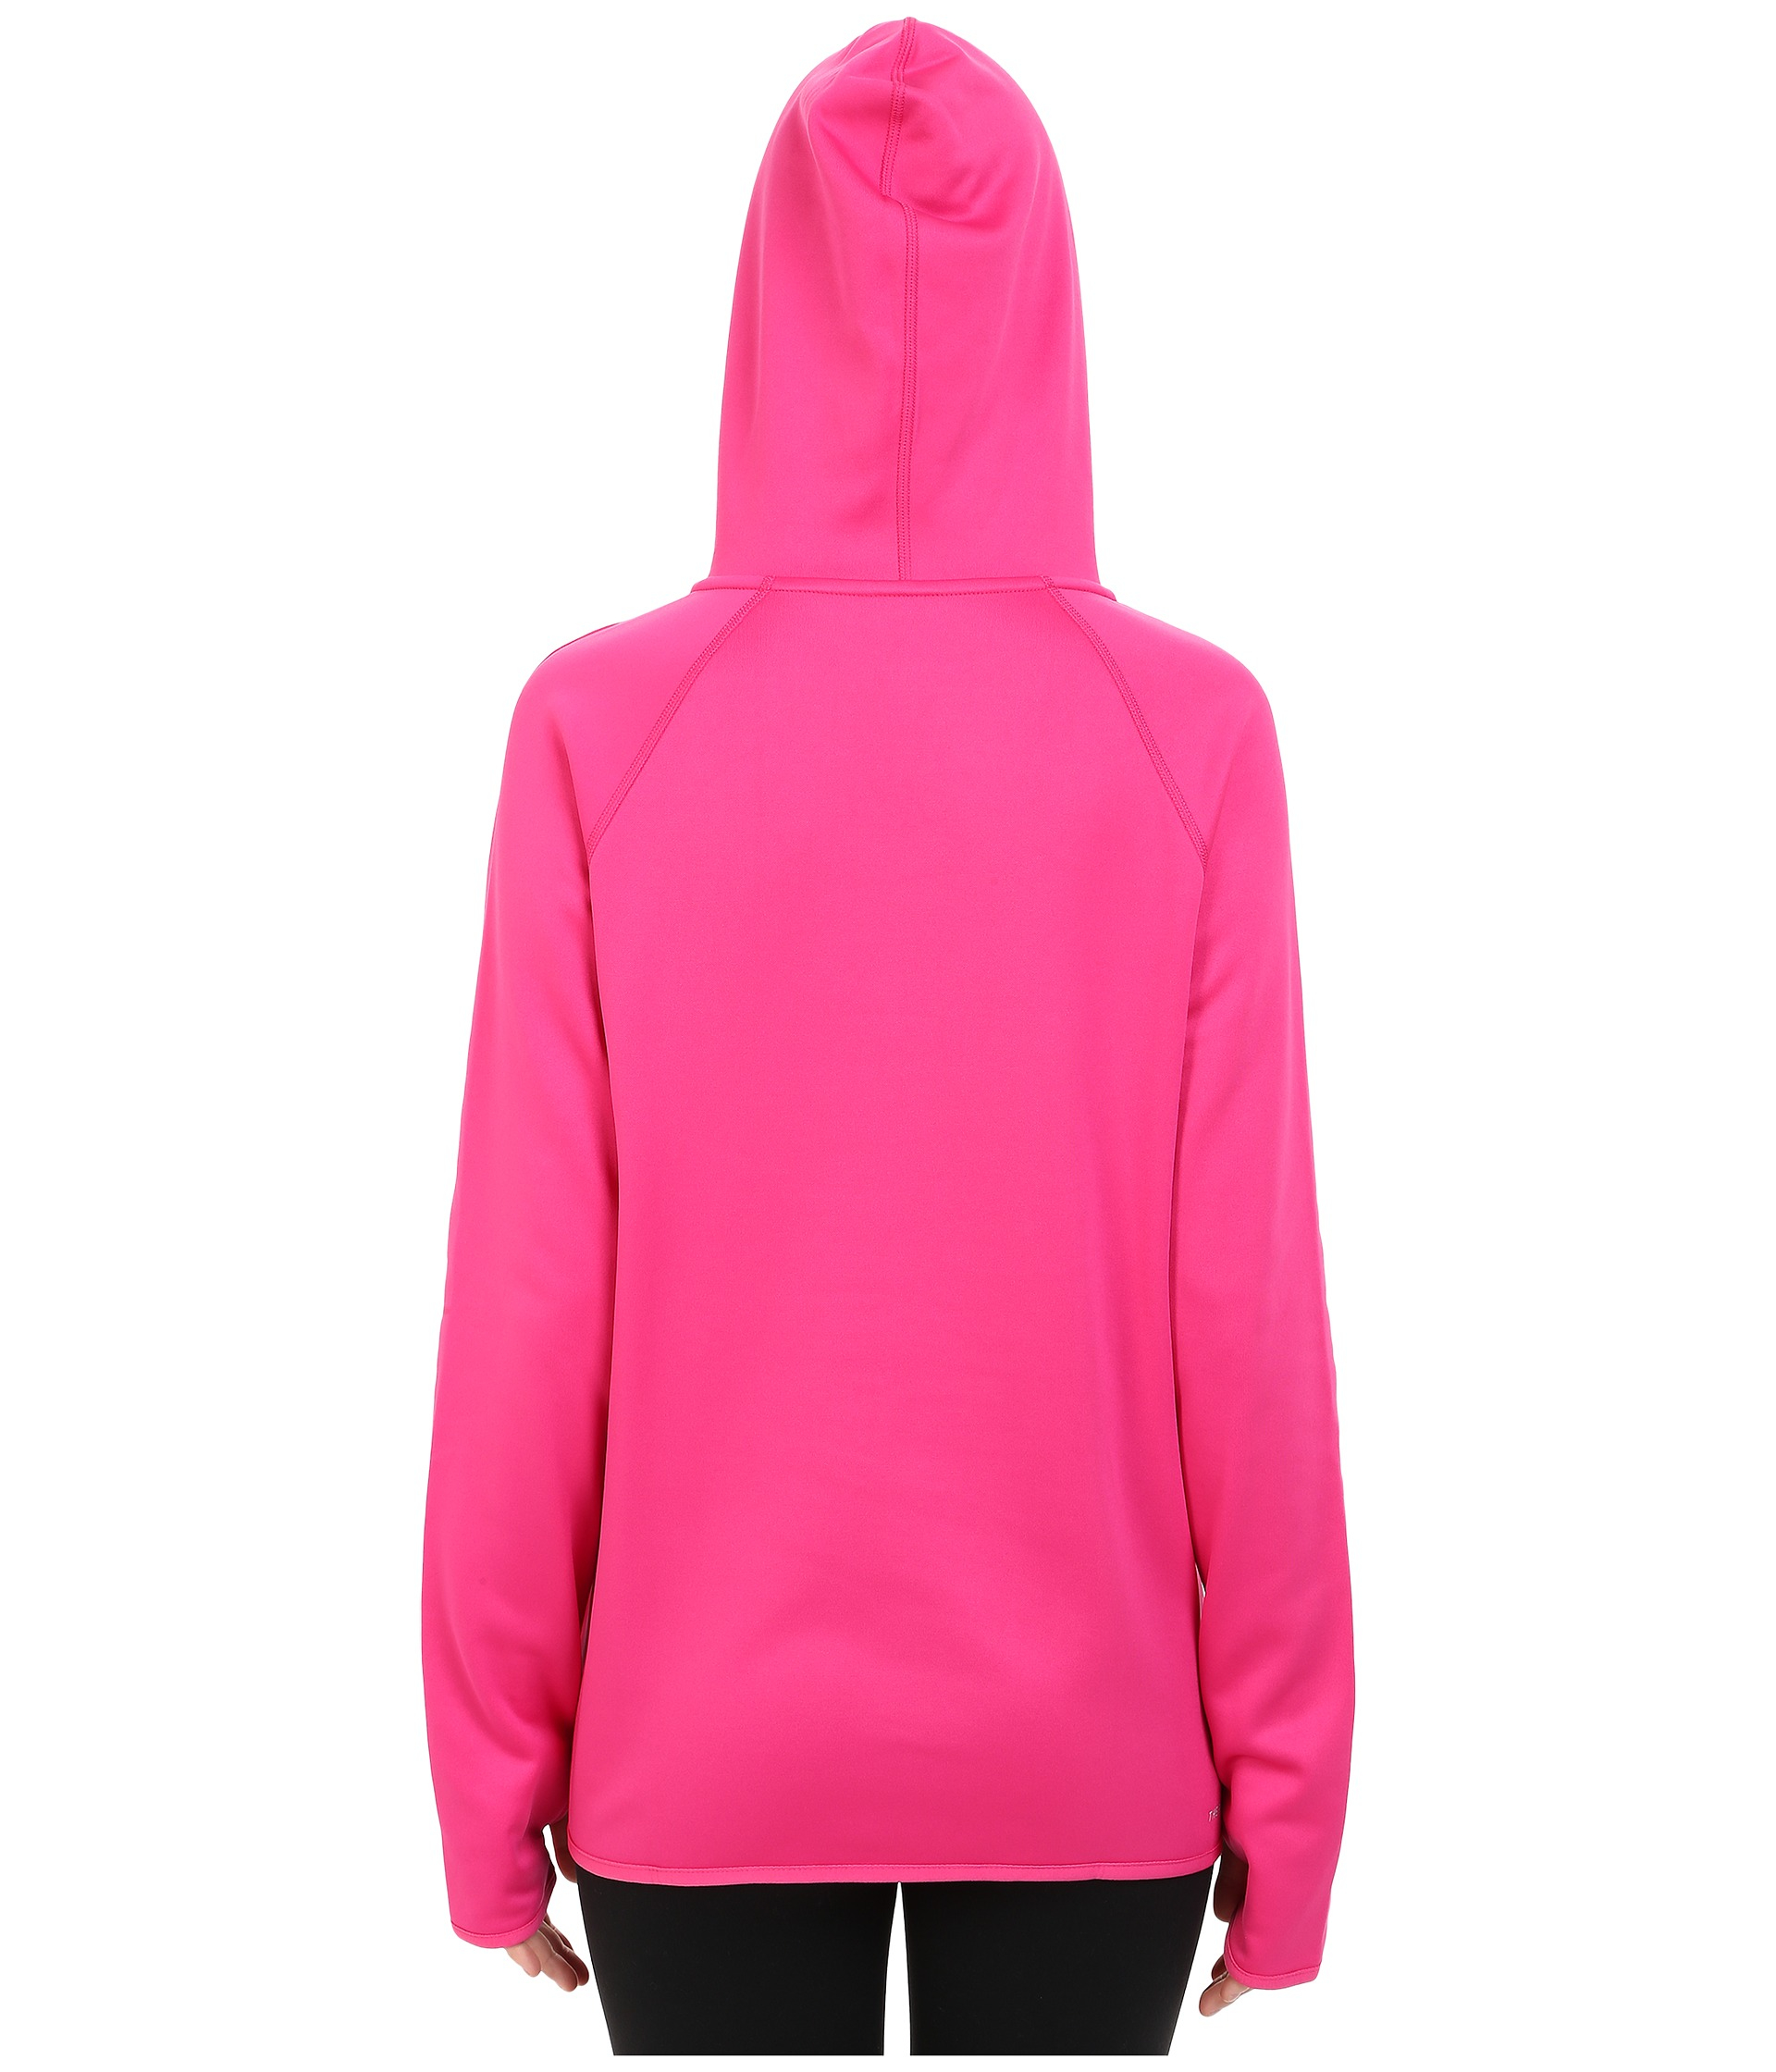 nike all time pullover hoodie in pink lyst